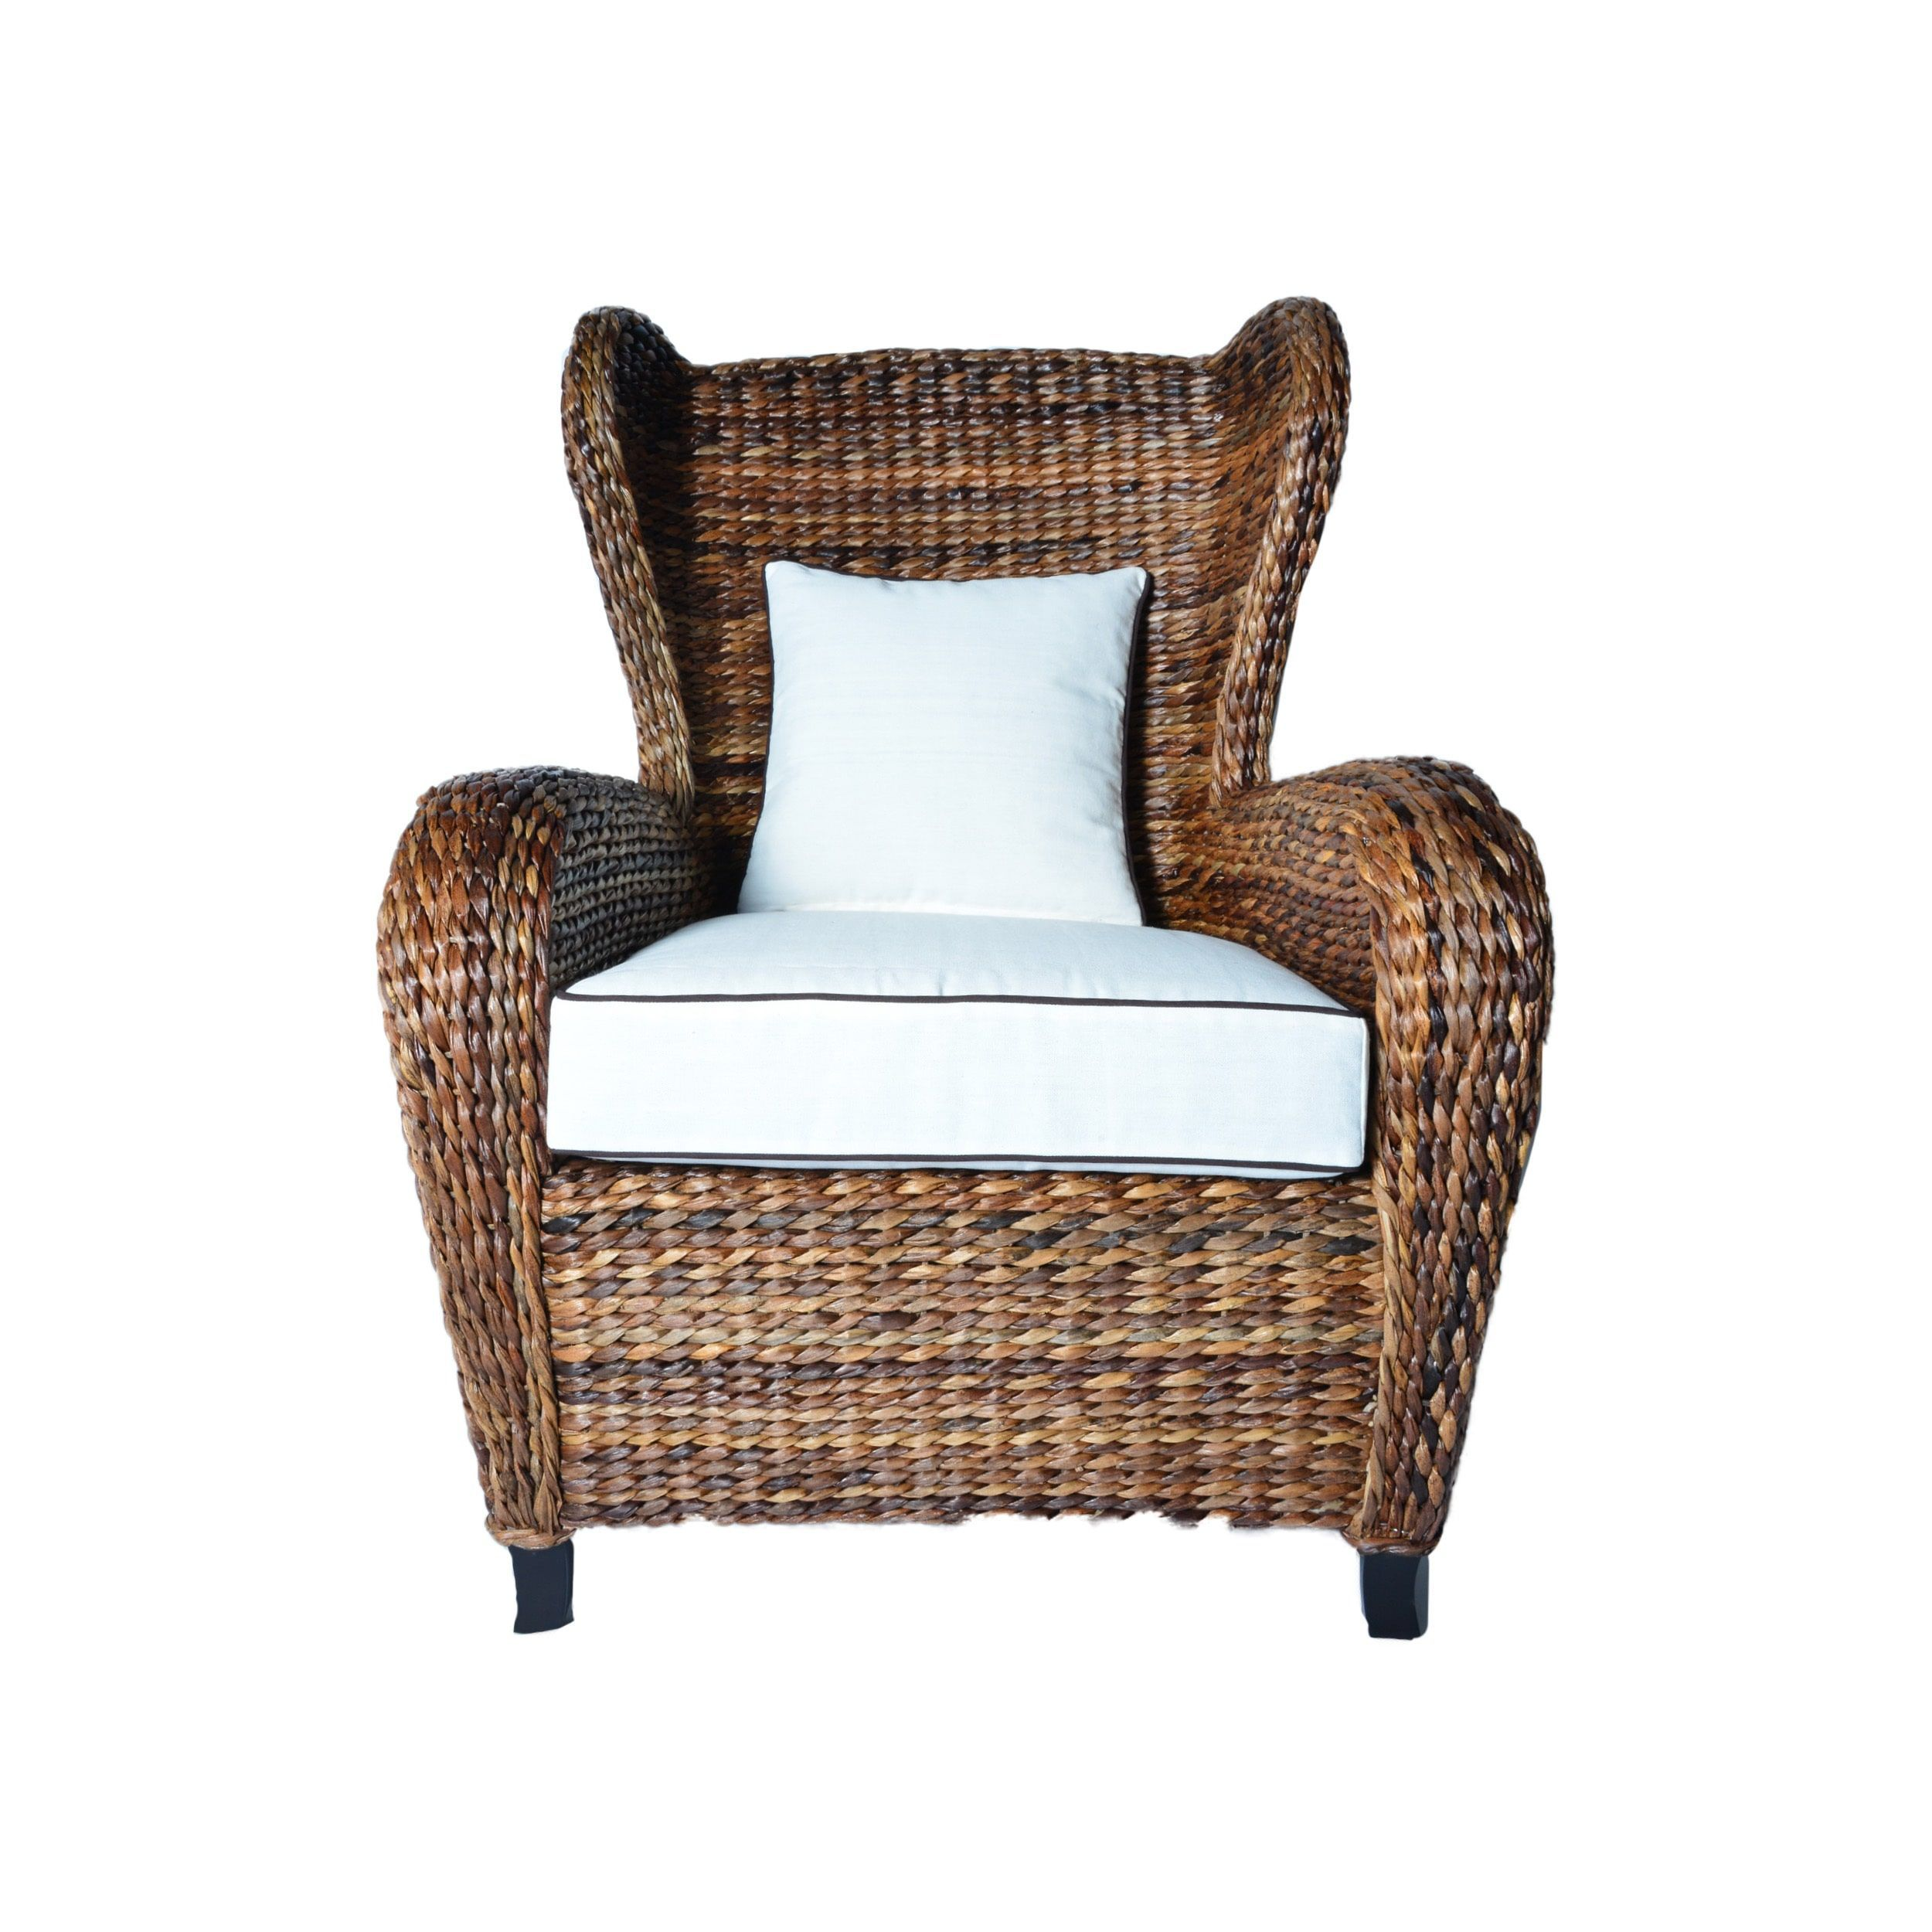 Rattan Lounge Chair Philippines Somette Handmade Boracay Brown Slope Arm Wingback Chair